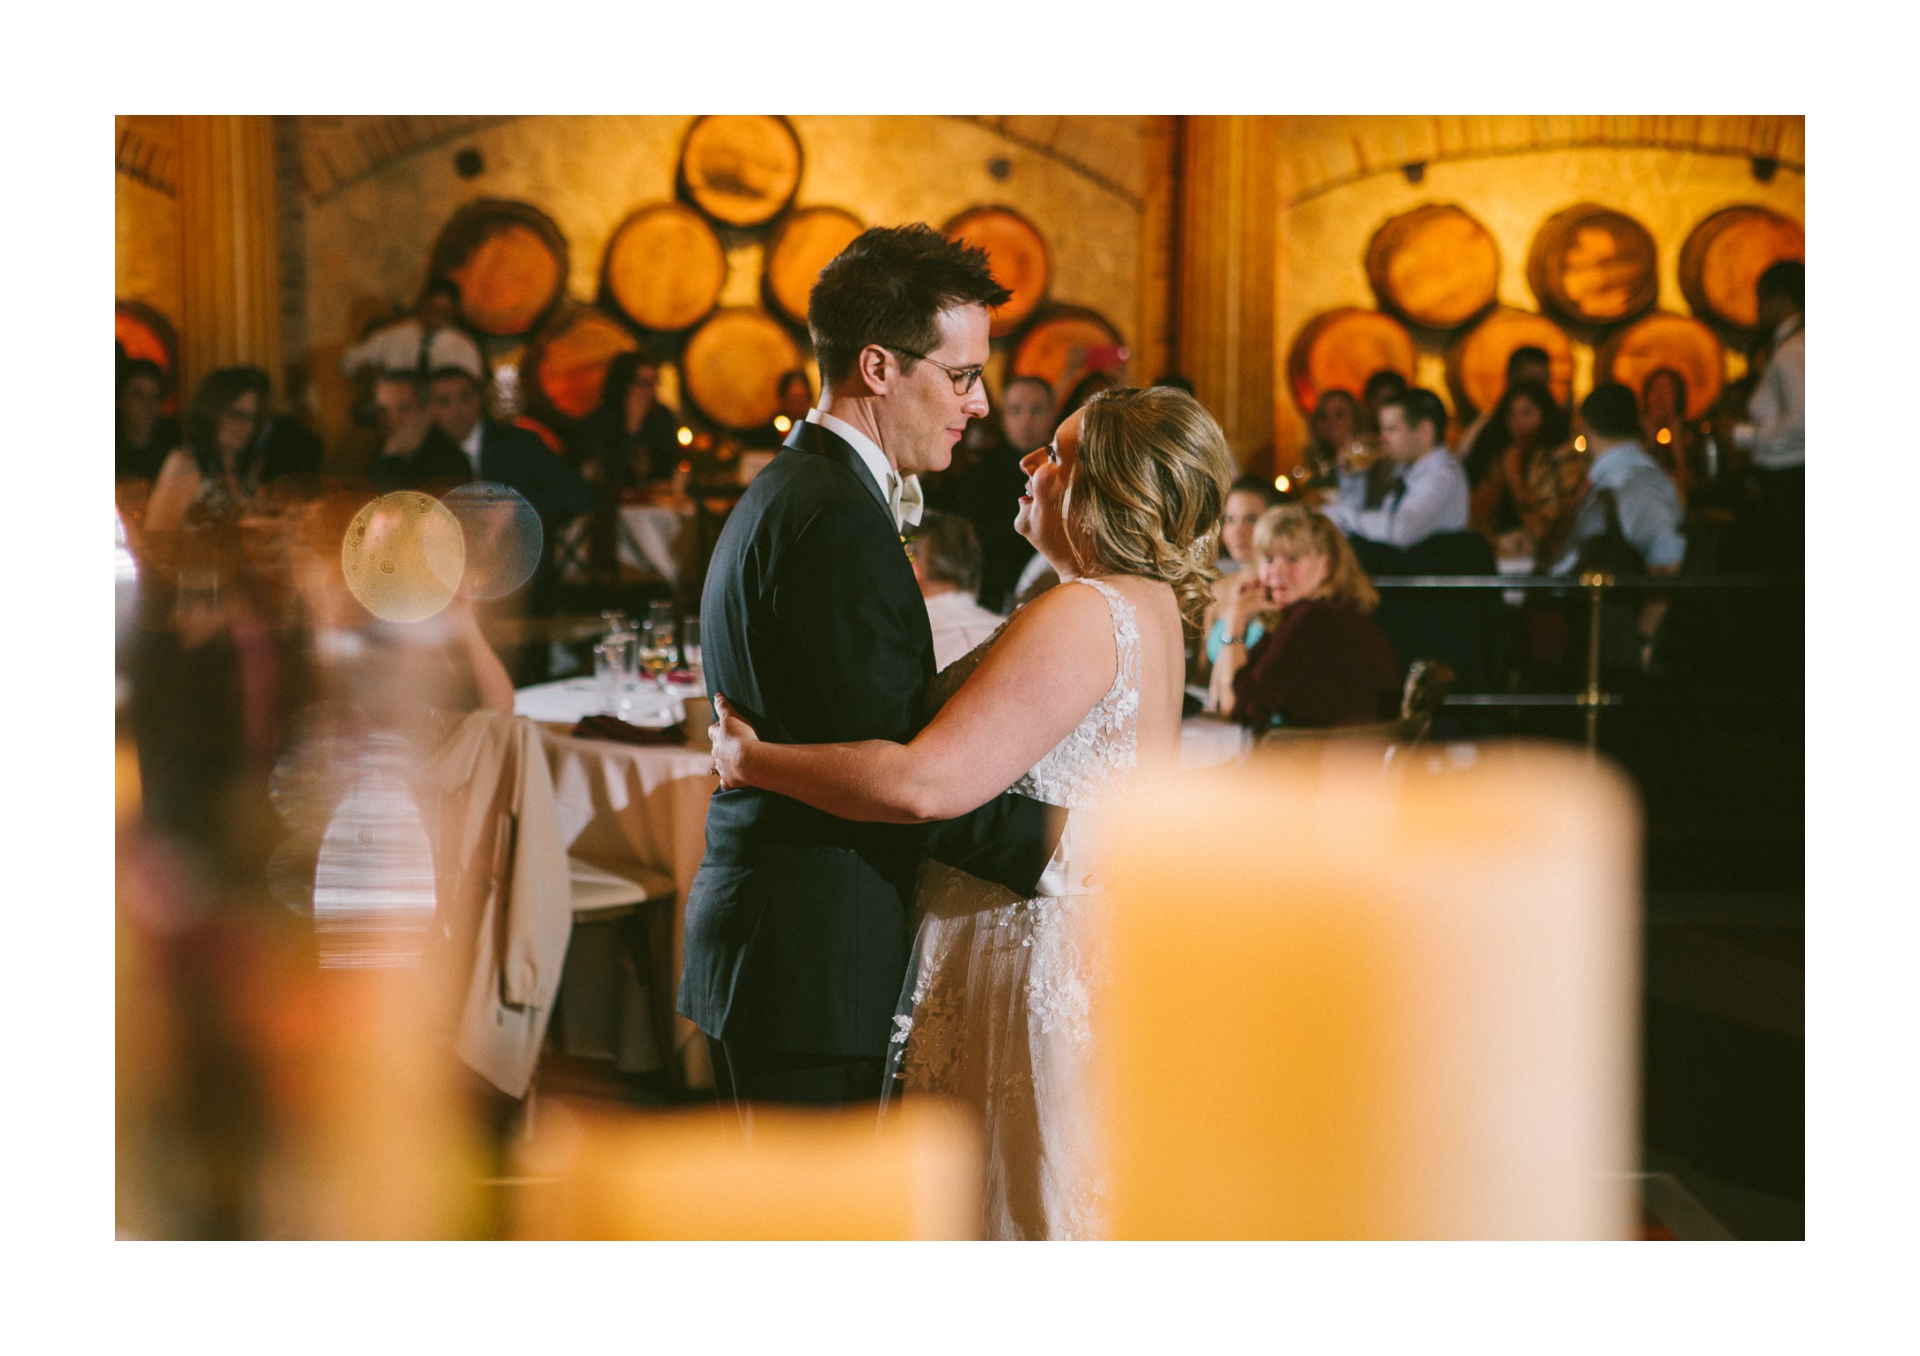 Cibreo Privato Wedding at Playhouse Square in Cleveland 2 22.jpg